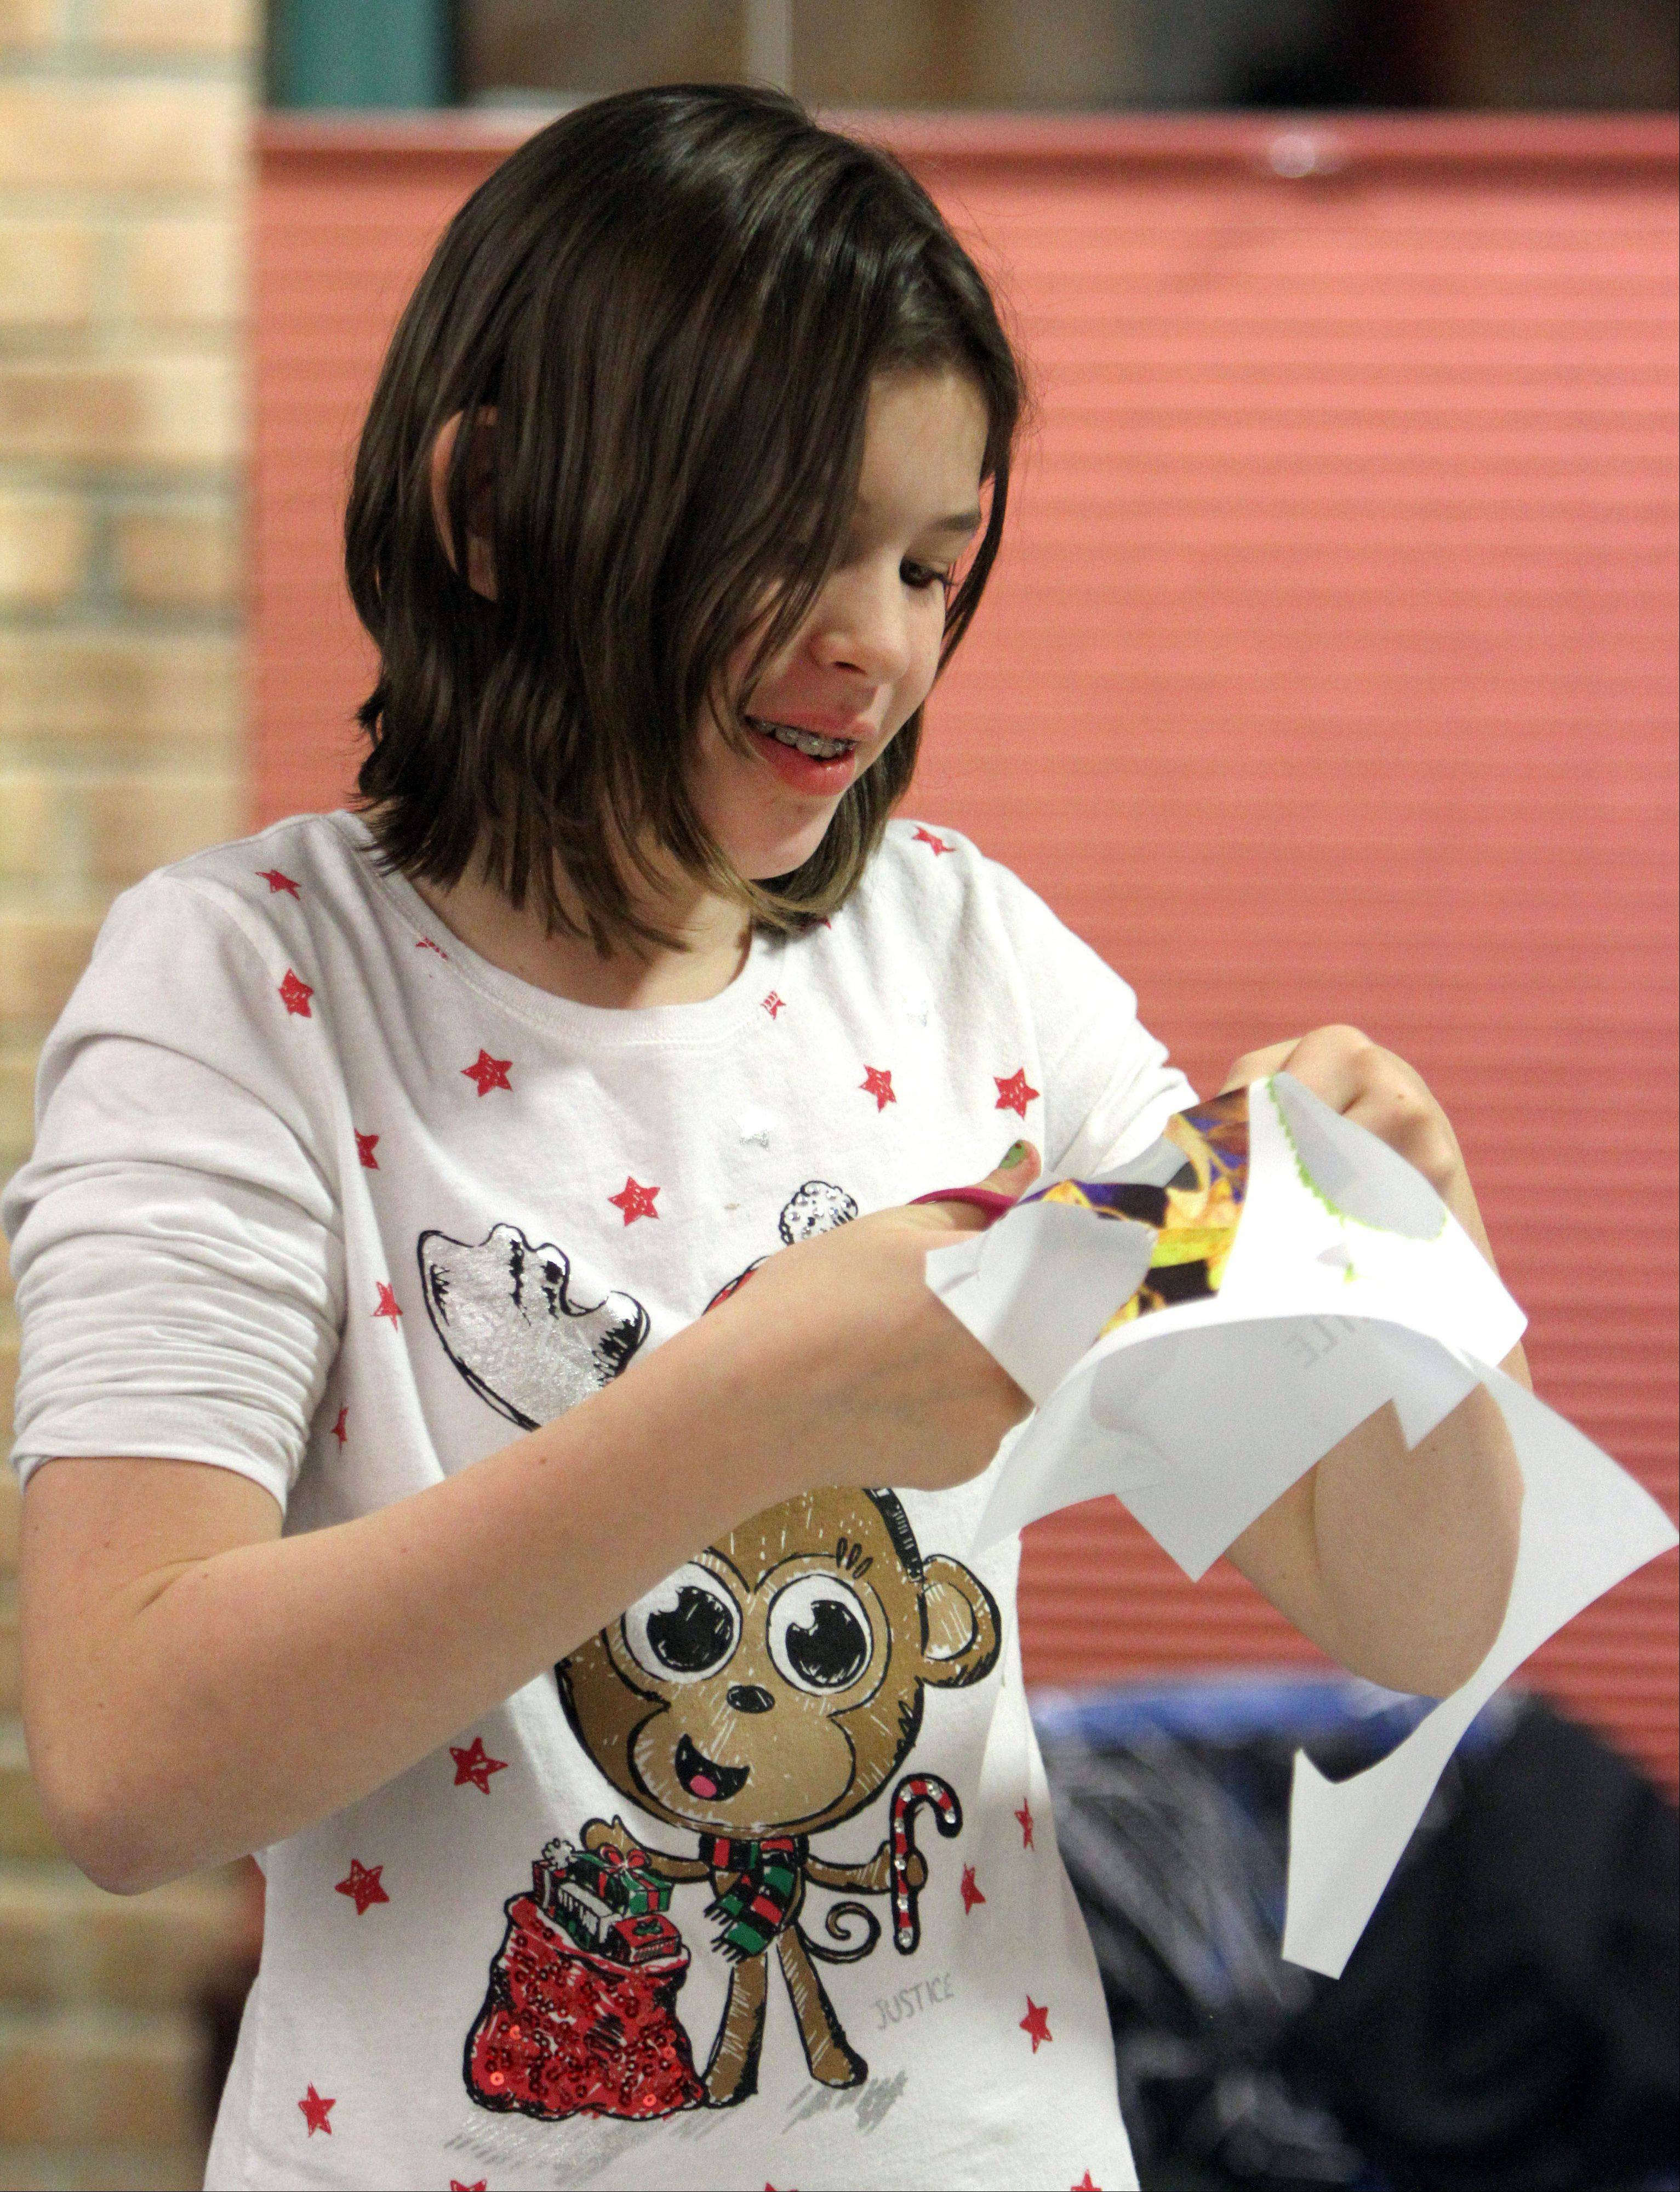 Twelve-year-old Monika Siedler of Round Lake Beach cuts out pictures of leaves as kids grades 4-6 participated in an art program Monday called Artful Inspirations at the Lake Villa District Library.